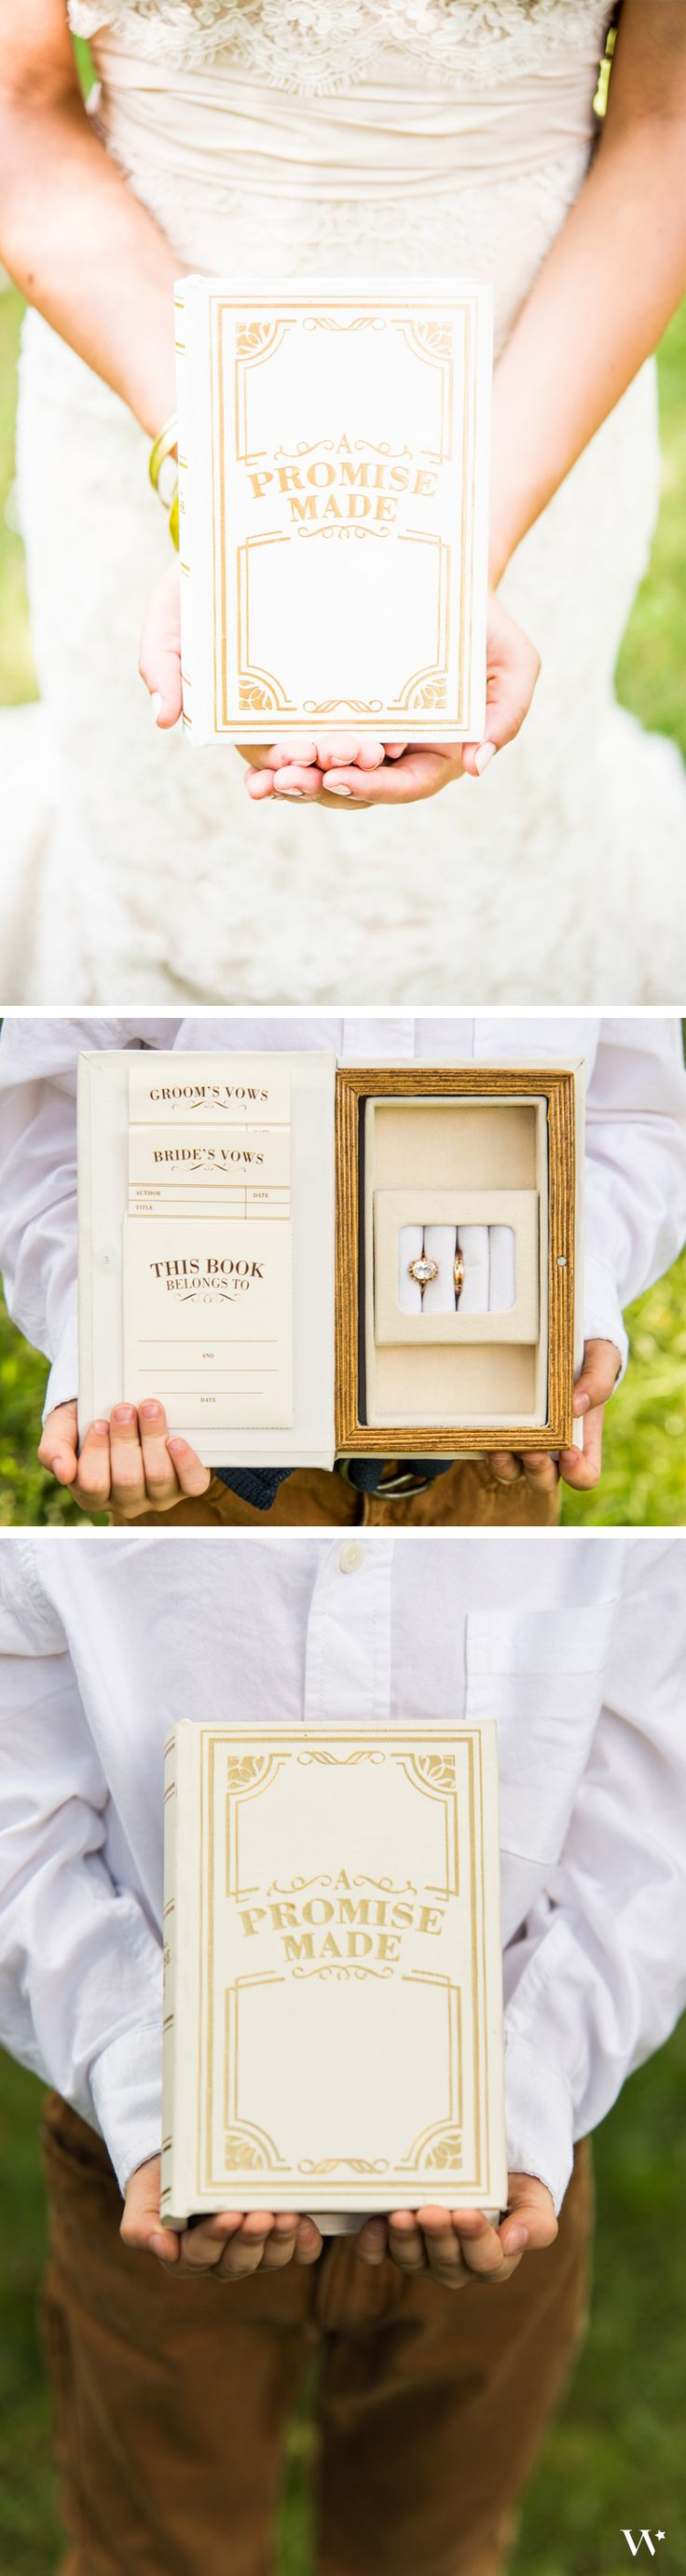 A great alternative to a traditional ring pillow - our Promise Made Vintage Inspired Ring Box will not only hold the rings, but your hand-written wedding vows as well!